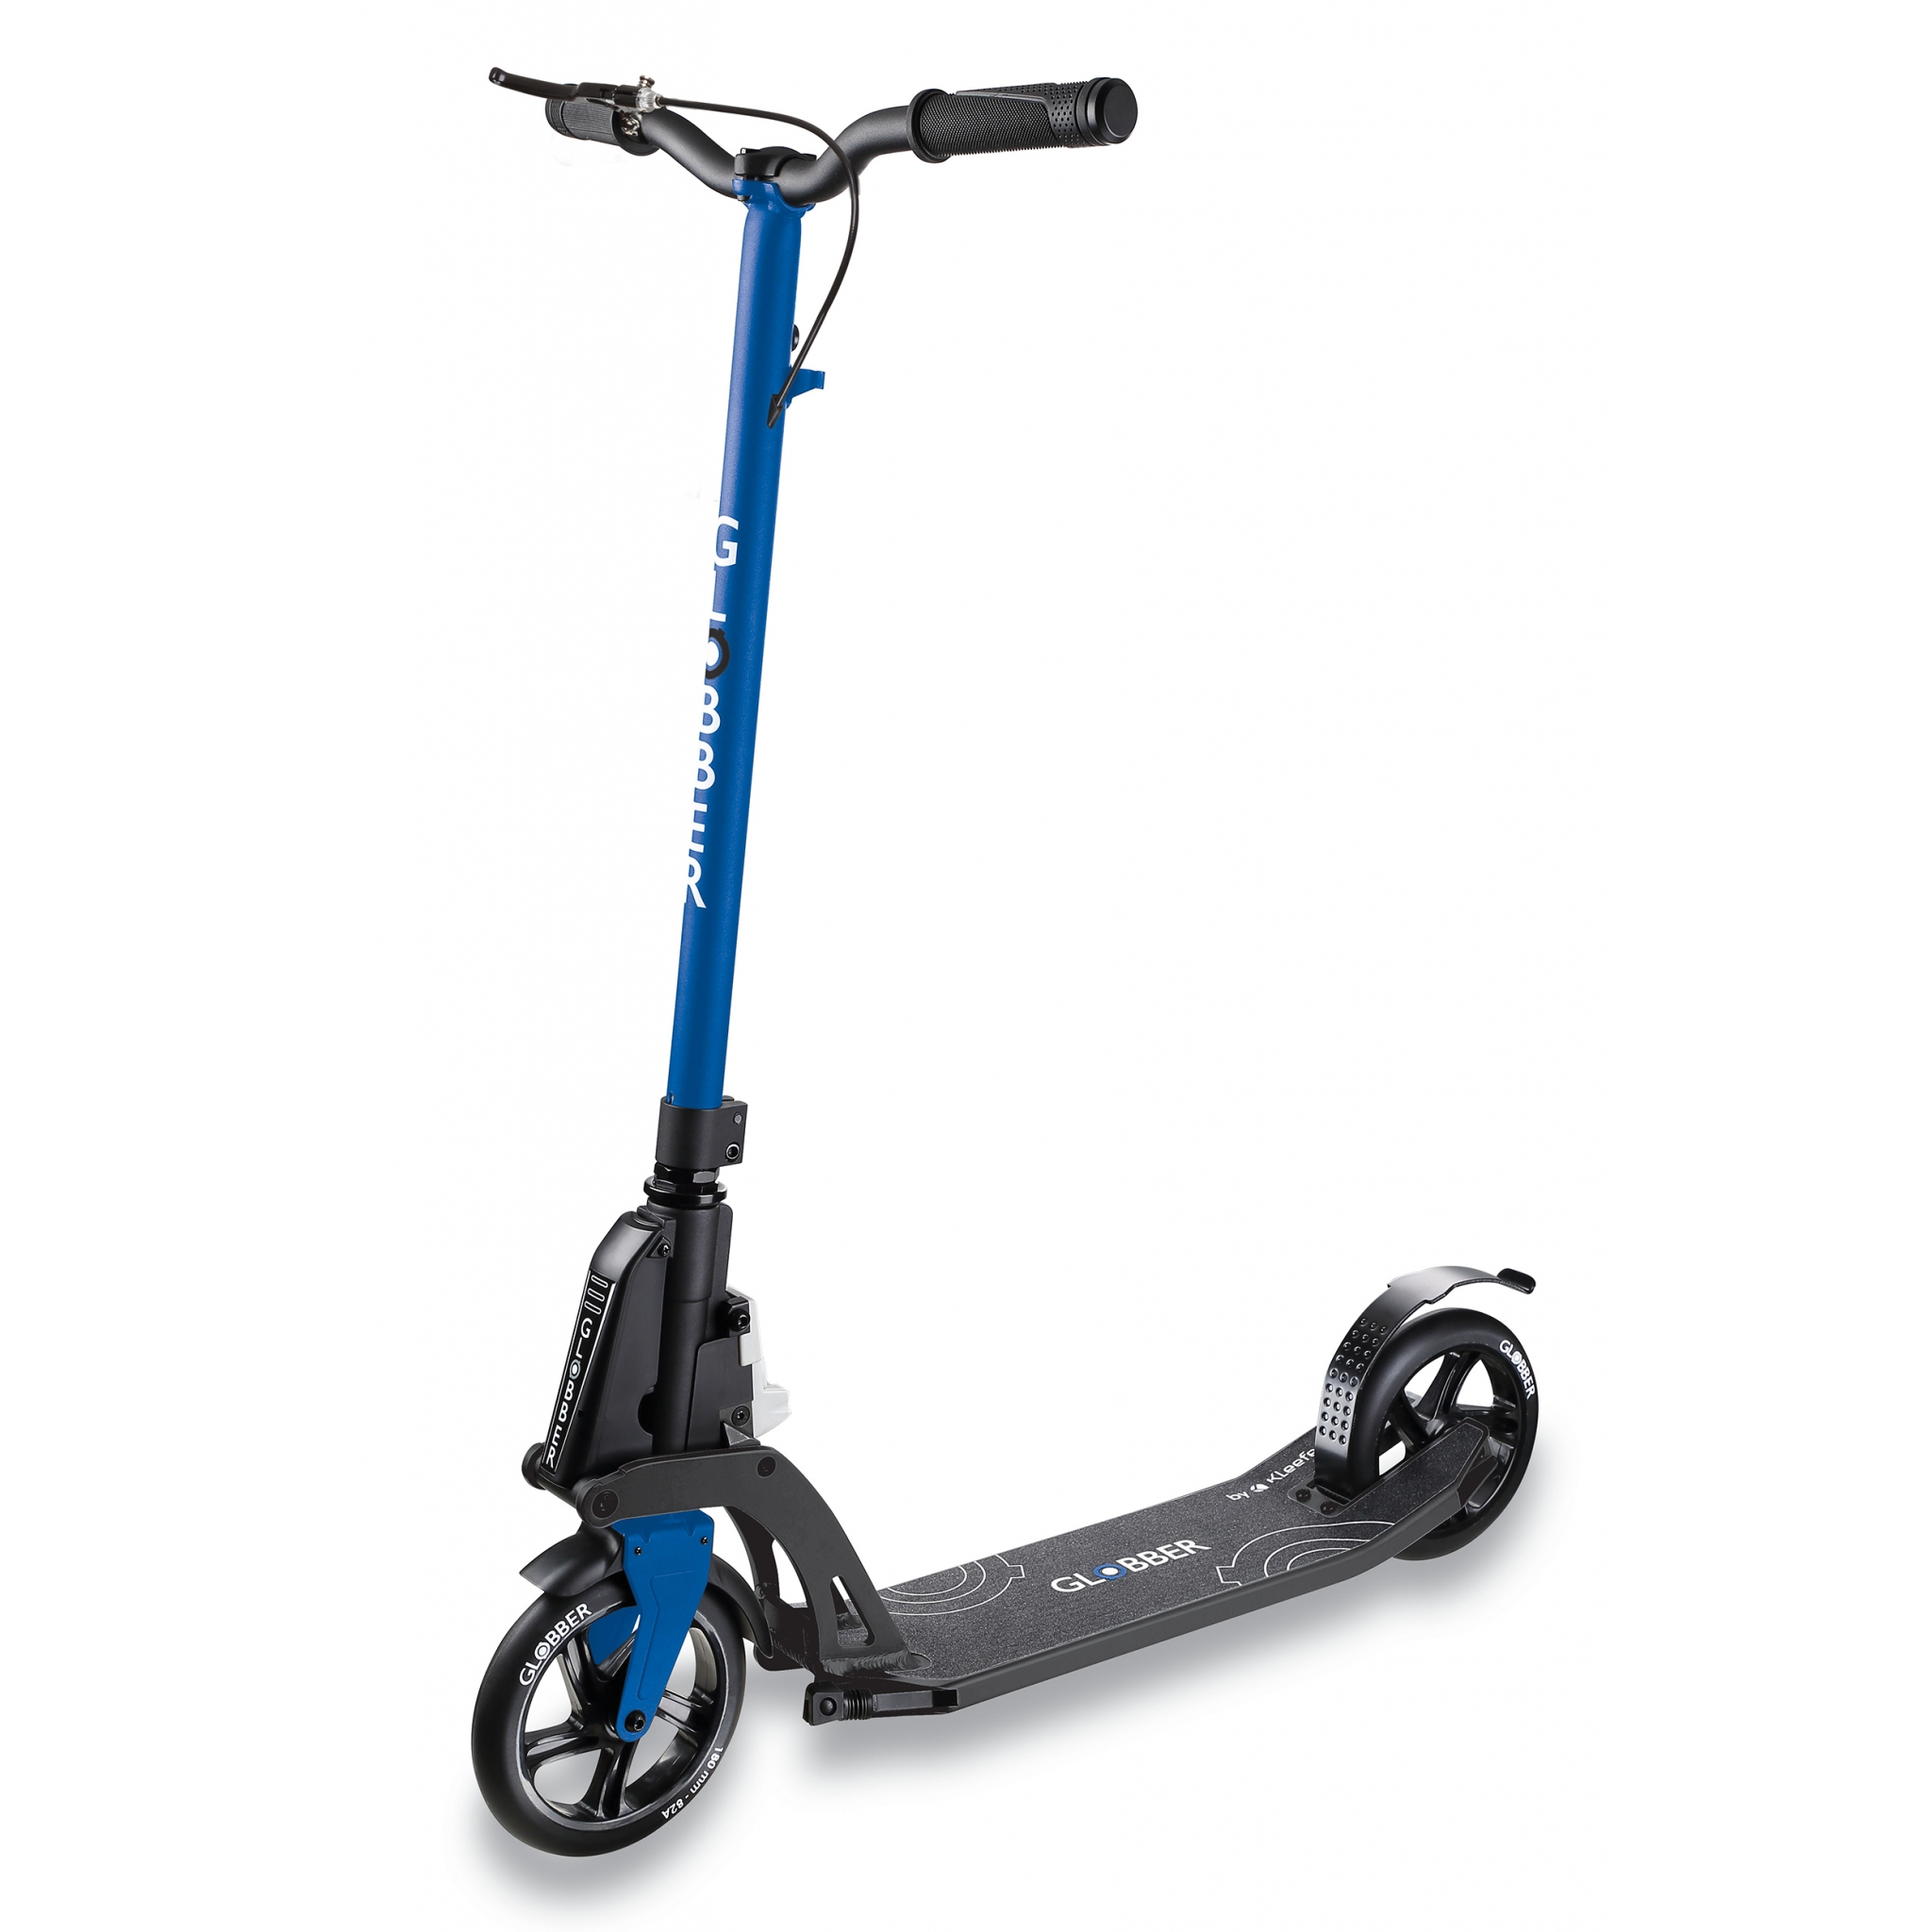 foldable scooter for adults with handbrake - Globber ONE K 180 BR 0